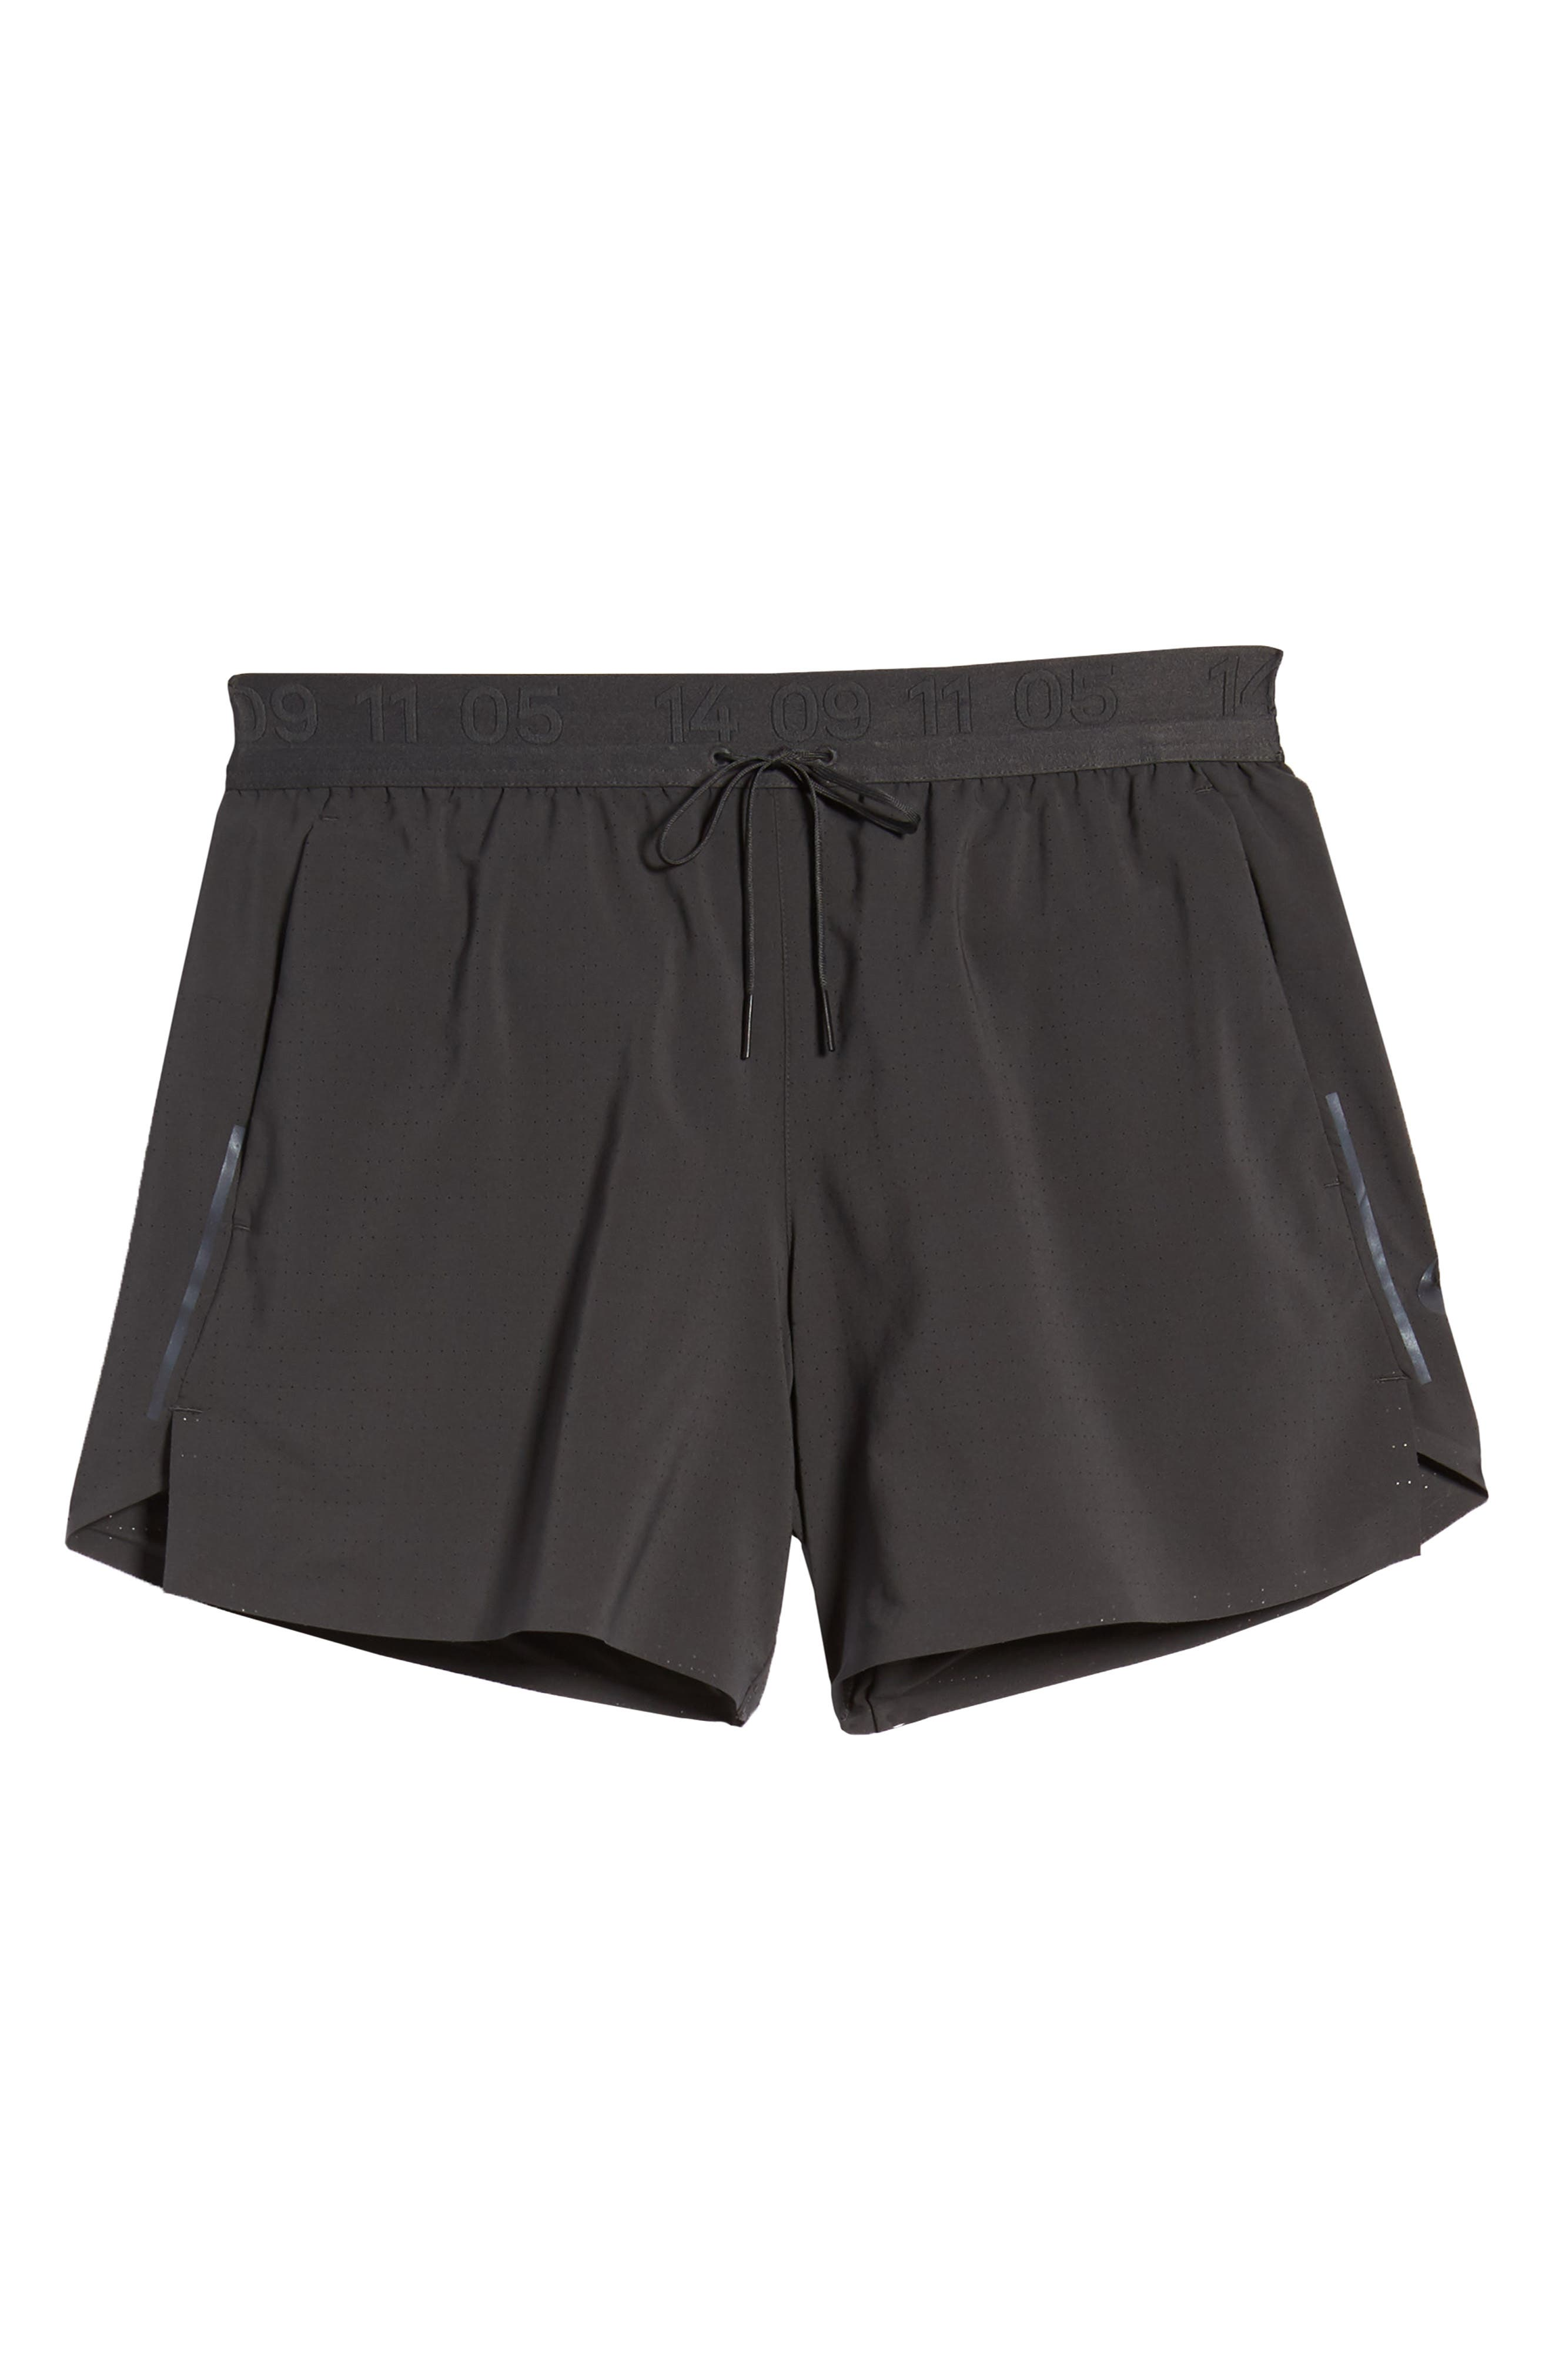 Running Shorts,                             Alternate thumbnail 6, color,                             ANTHRACITE/ ANTHRACITE